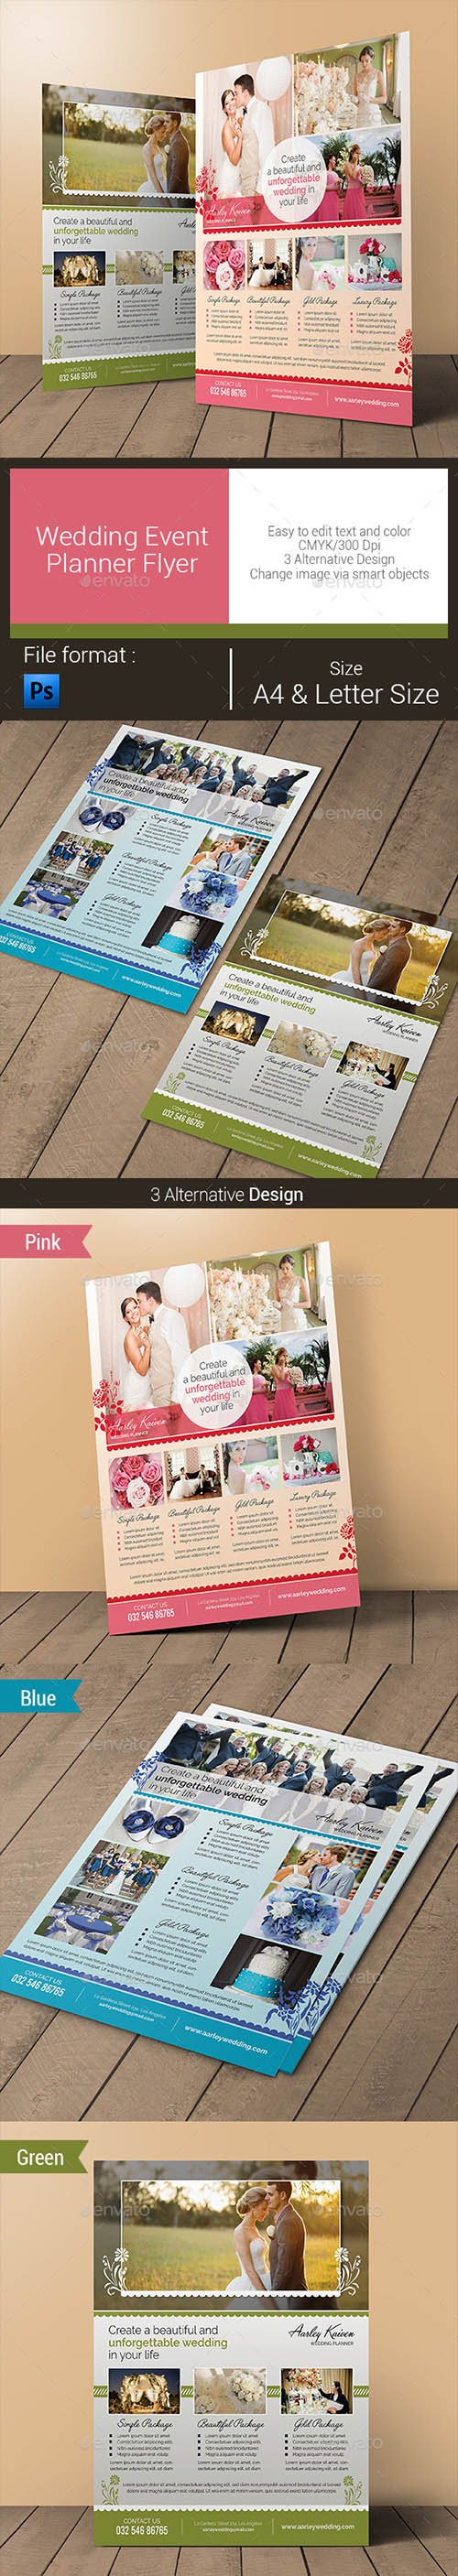 GR - Wedding Event Planner Flyer 10796720